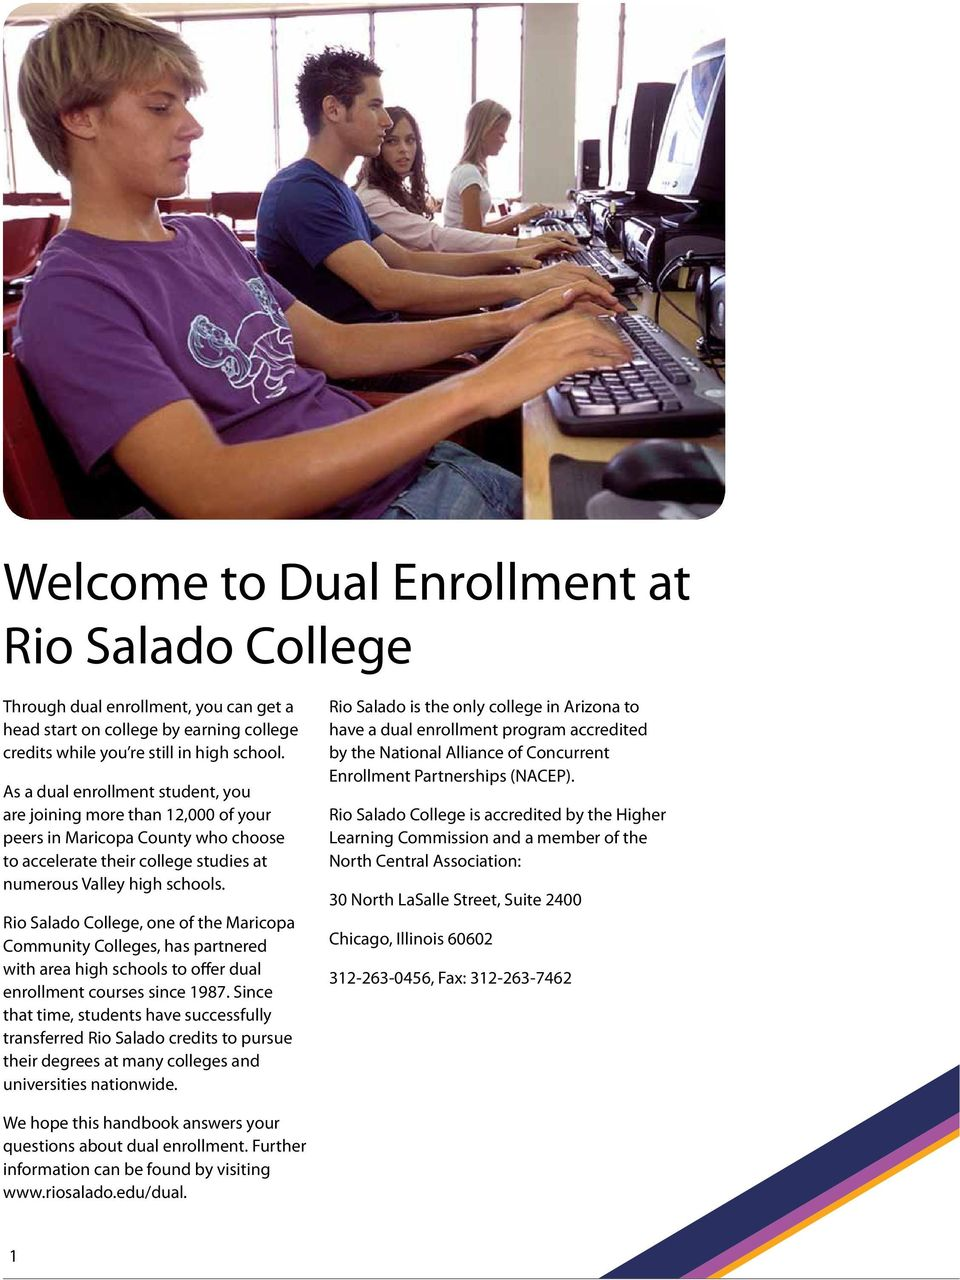 Rio Salado College, one of the Maricopa Community Colleges, has partnered with area high schools to offer dual enrollment courses since 1987.